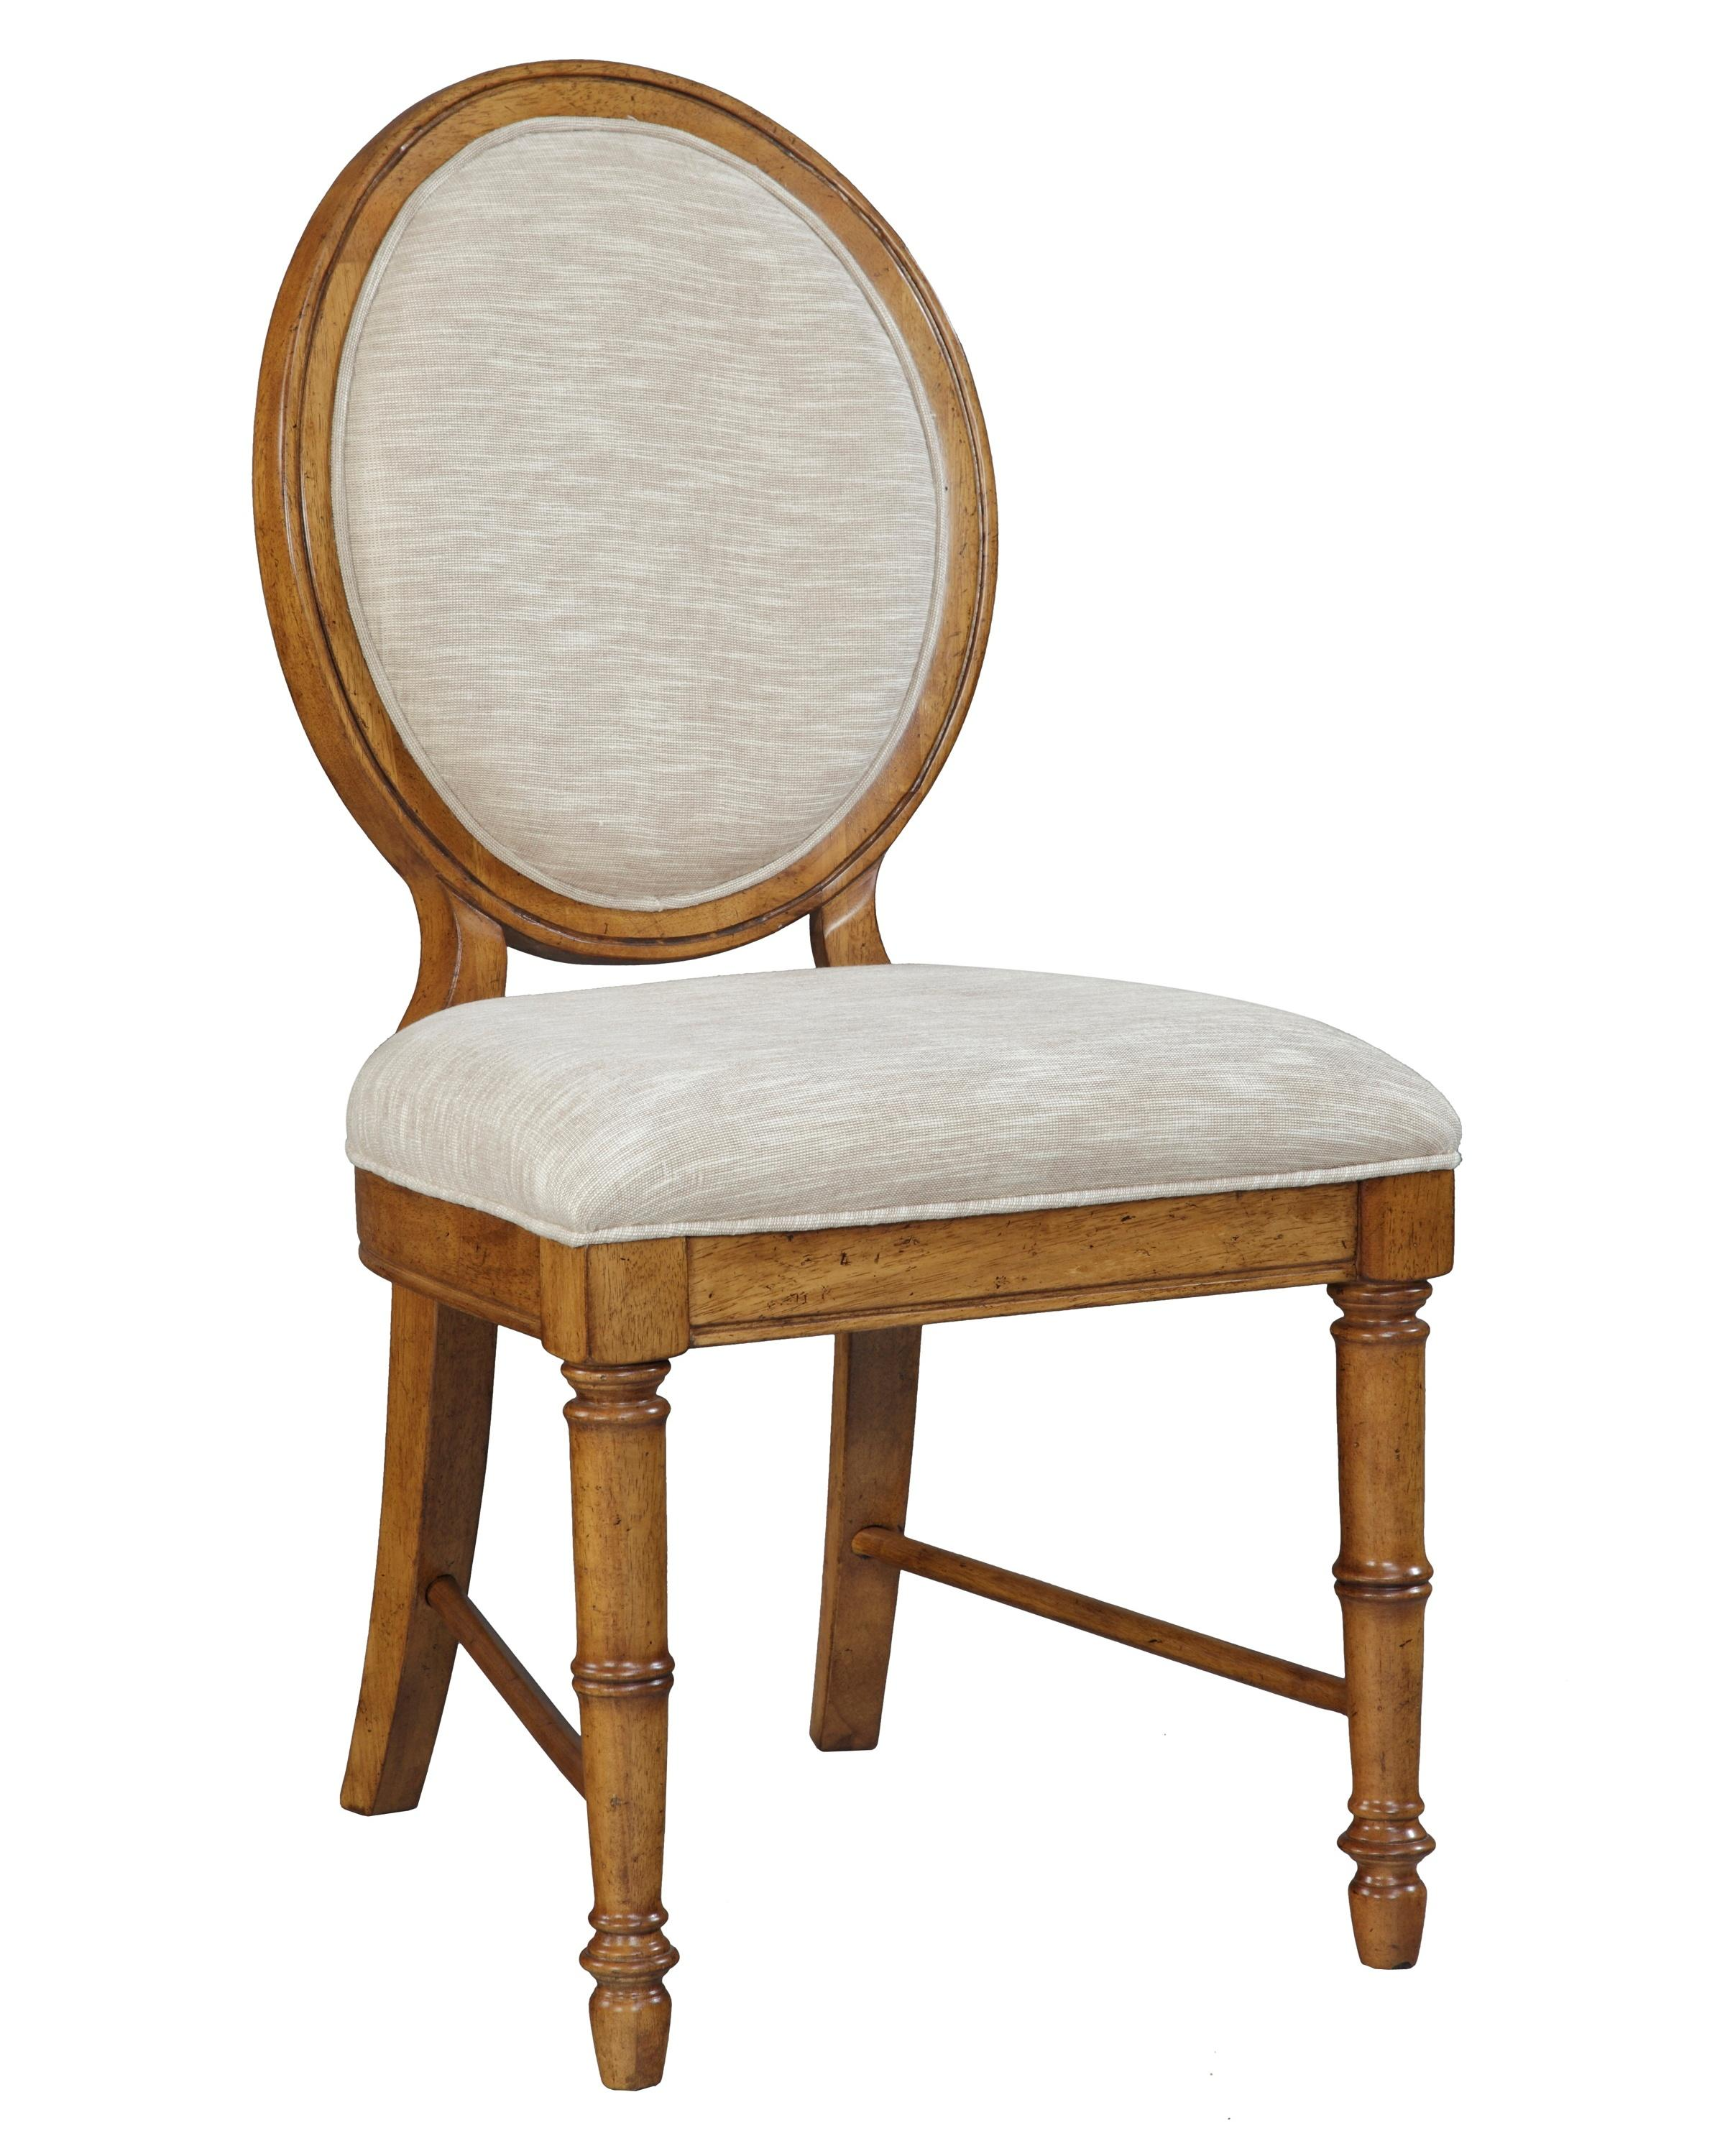 samana cove upholstered dining side chair with round bamboo back by broyhill furniture